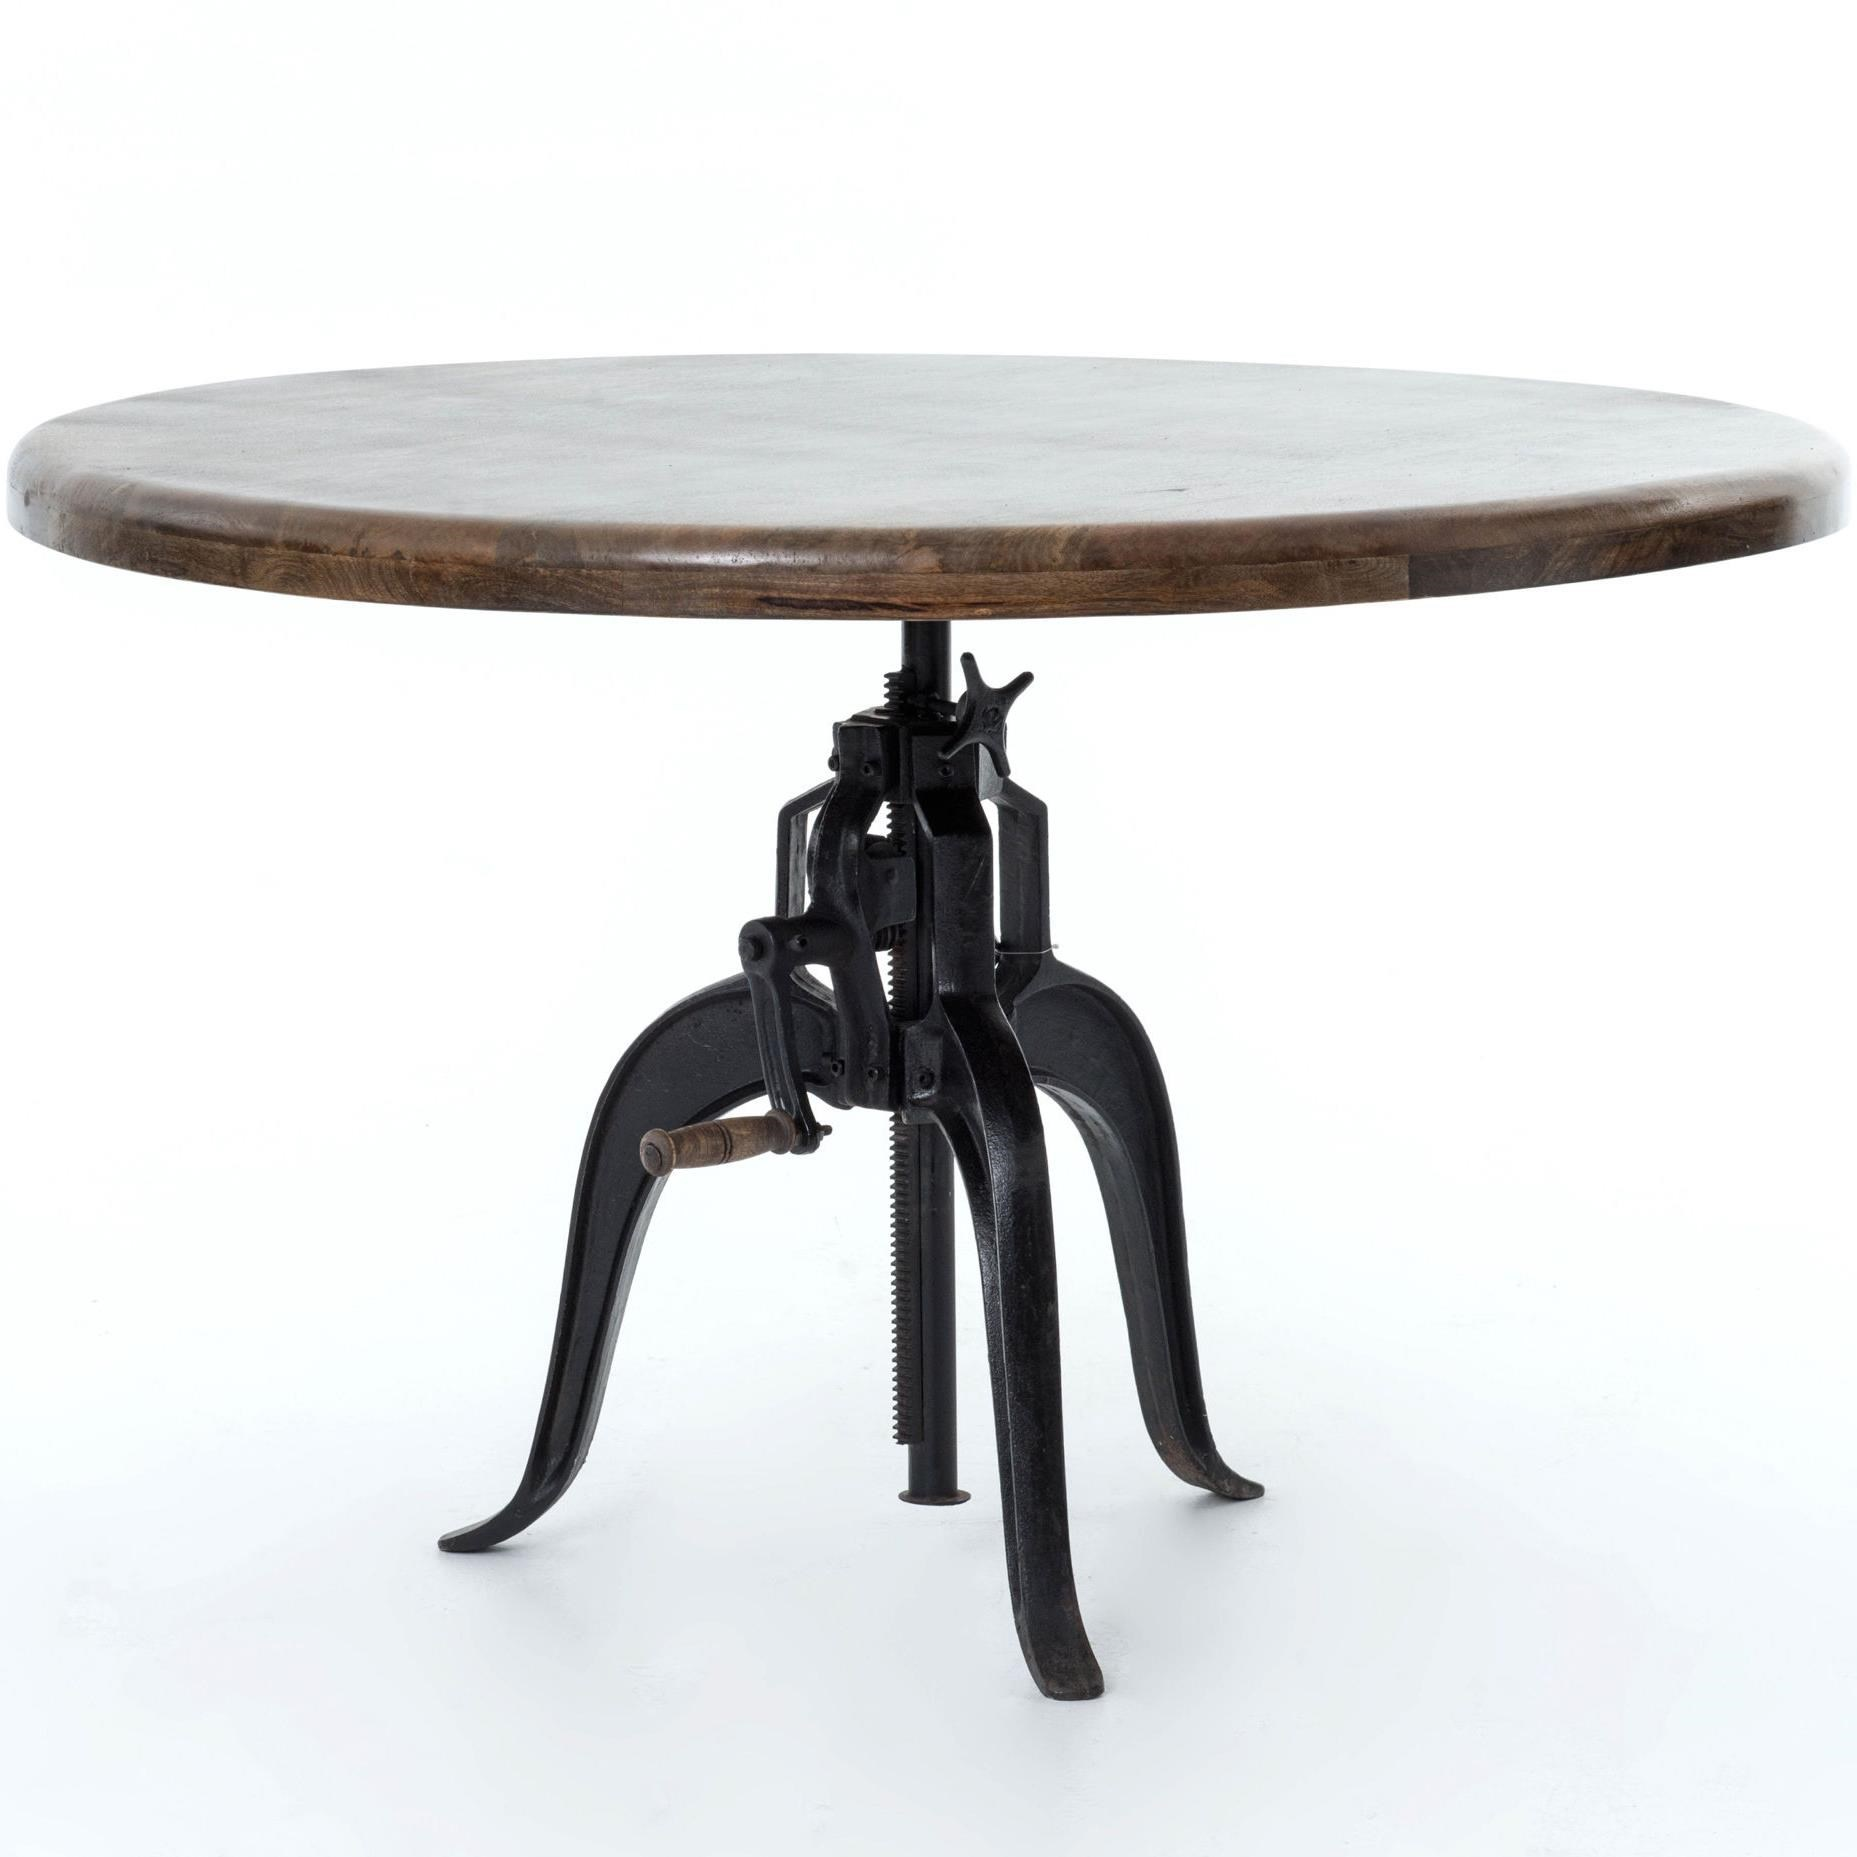 four hands rockwell adjustable round dining table with cast iron base   belfort furniture   kitchen tables four hands rockwell adjustable round dining table with cast iron      rh   belfortfurniture com